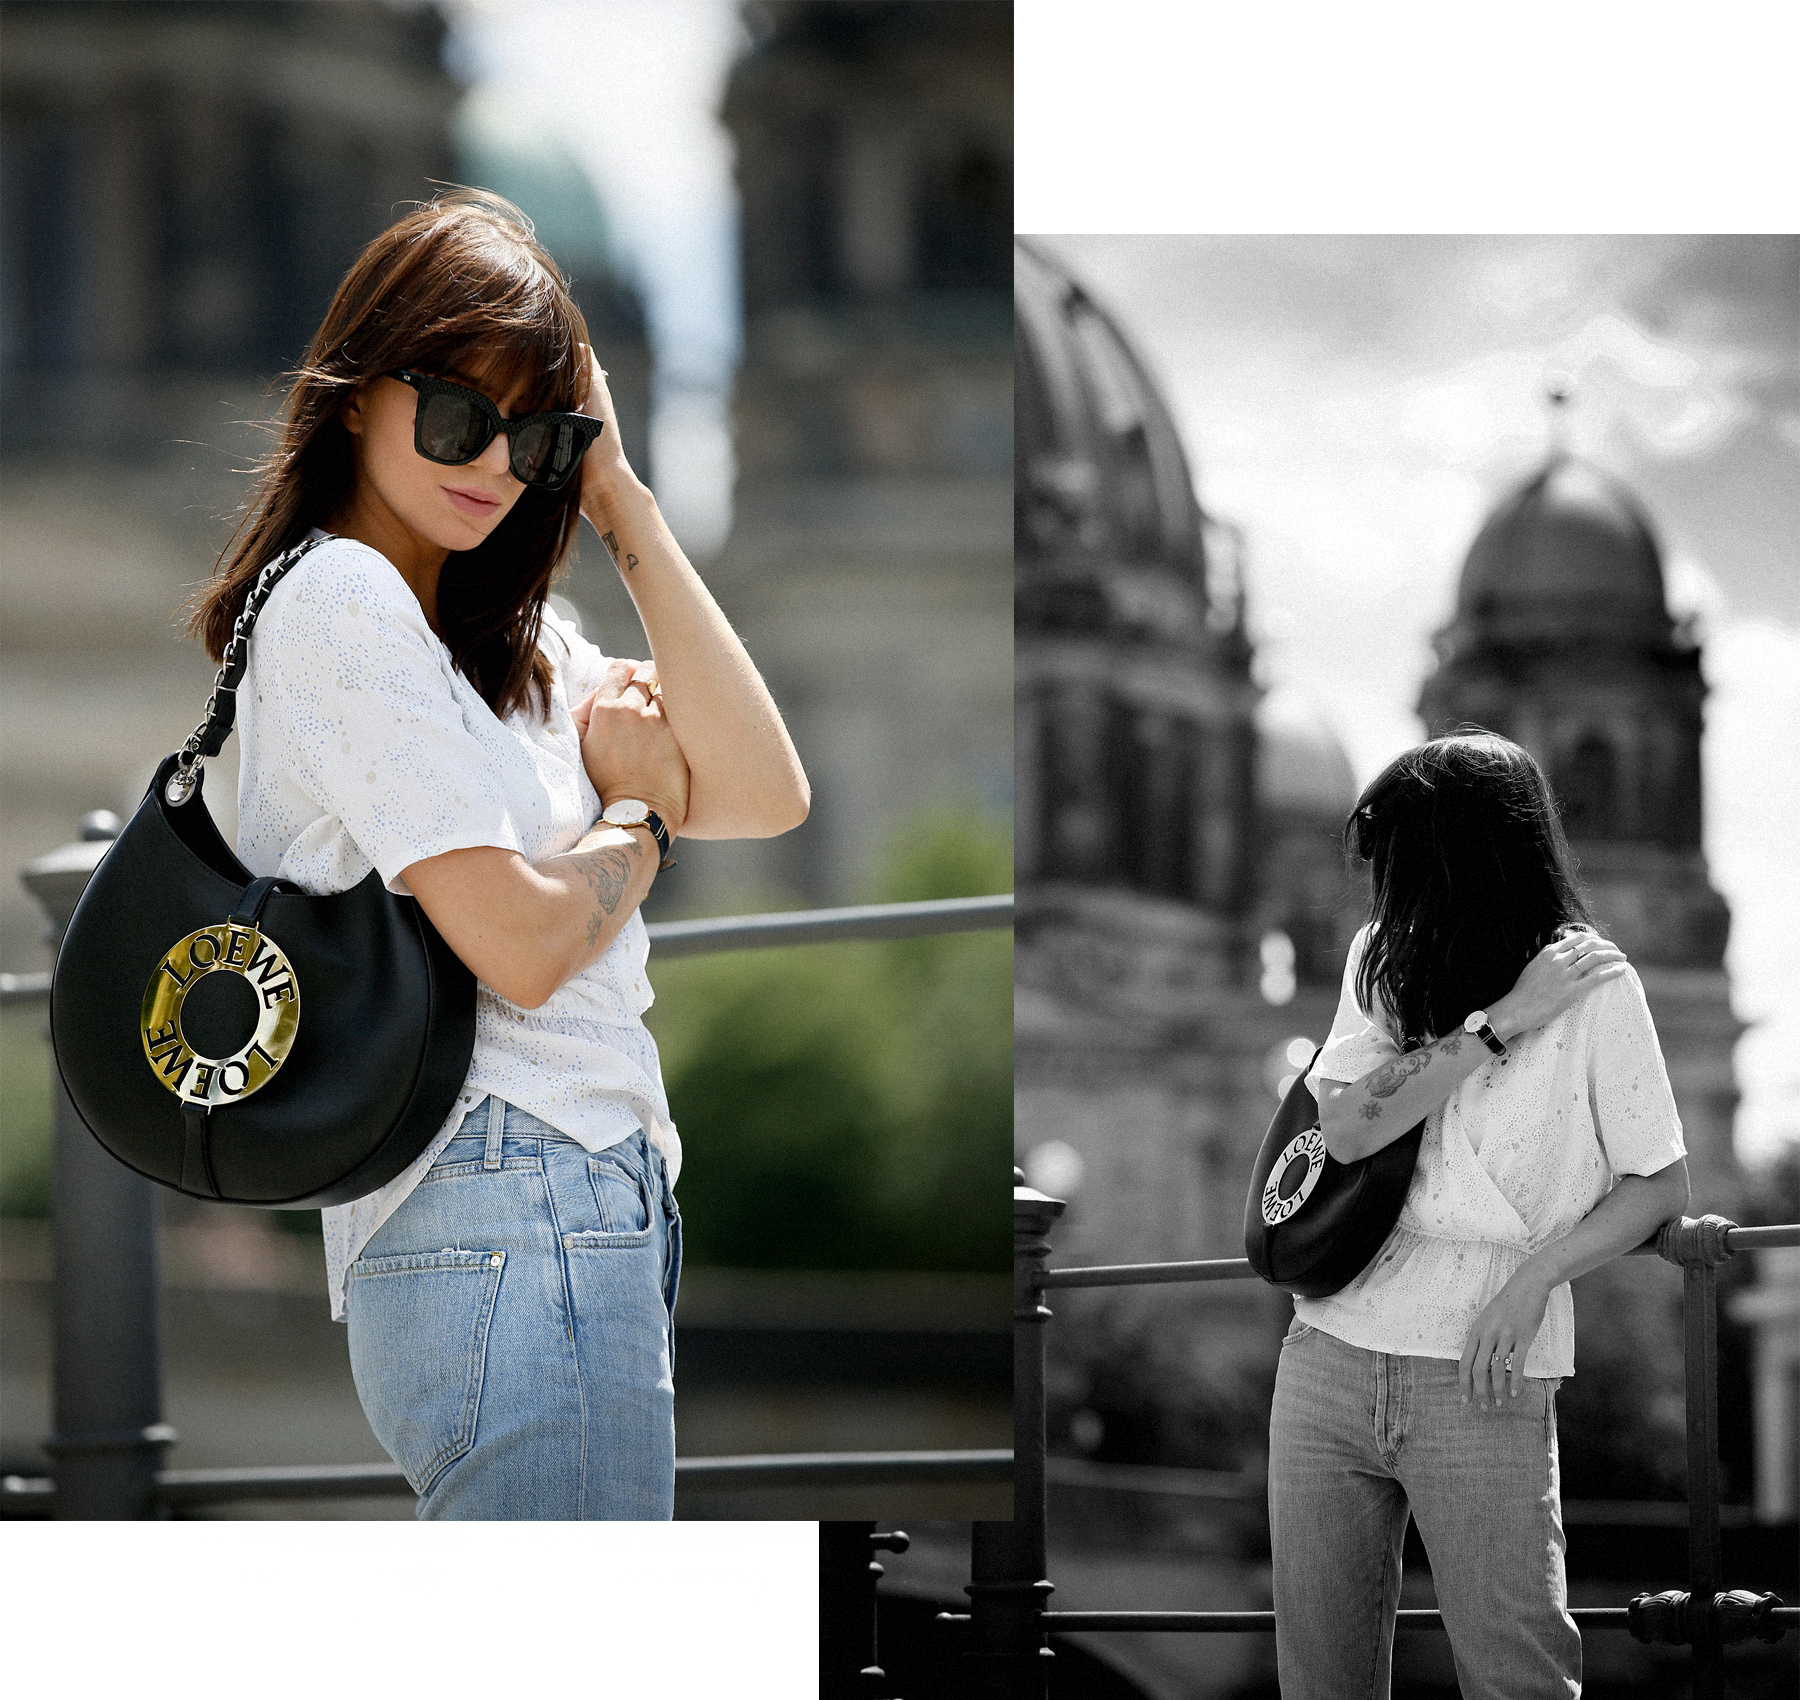 outfit berlin dom museumsinsel denim white blouse parisienne mbym jeanne damas style bangs brunette chic look outfitblogger breuninger loewe joyce bag mcm sunglasses summer german fashion blogger cats & dogs modeblog ricarda schernus max bechmann foto 5